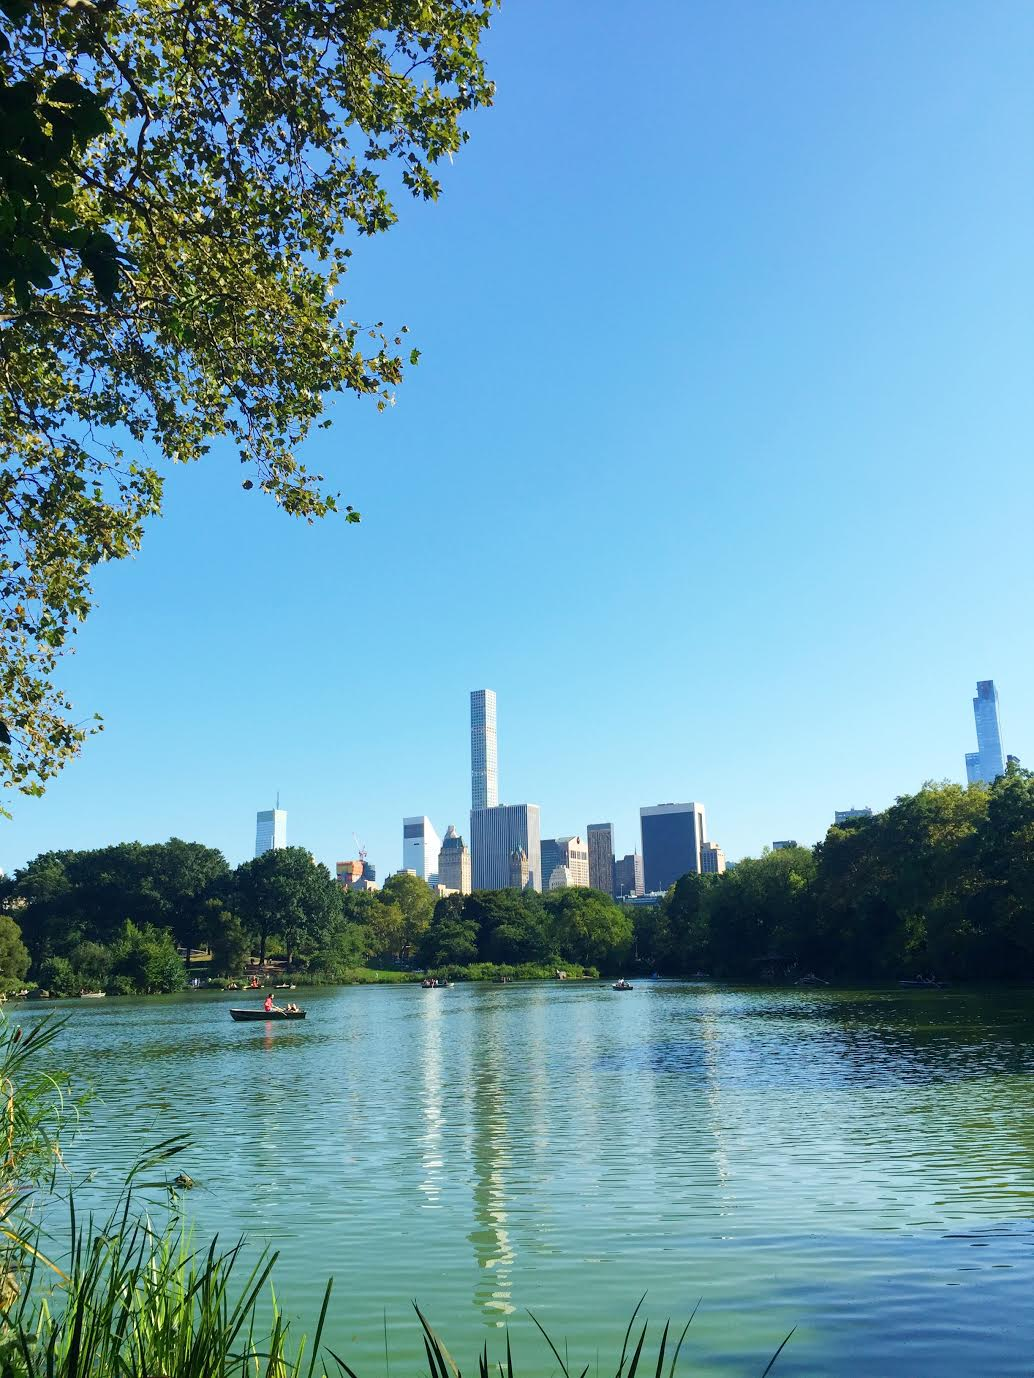 Things to see in New York City - central park